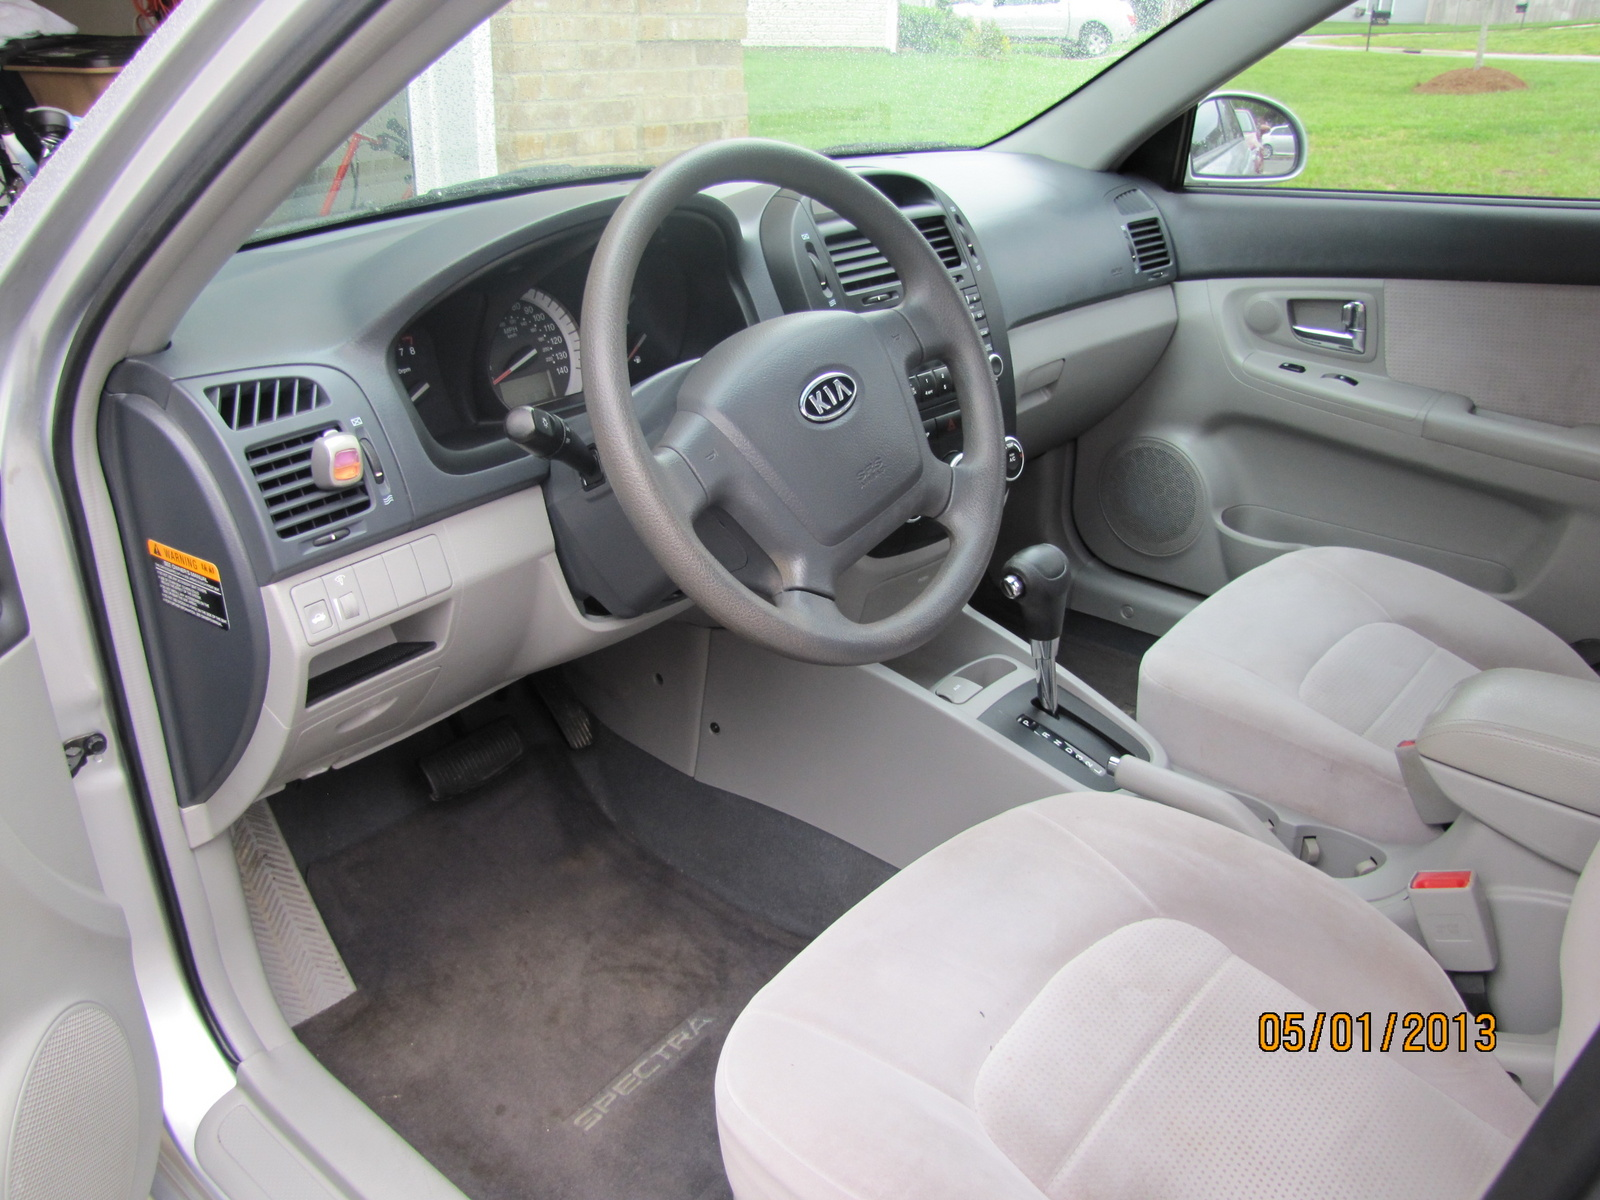 2007 kia spectra interior pictures cargurus. Black Bedroom Furniture Sets. Home Design Ideas